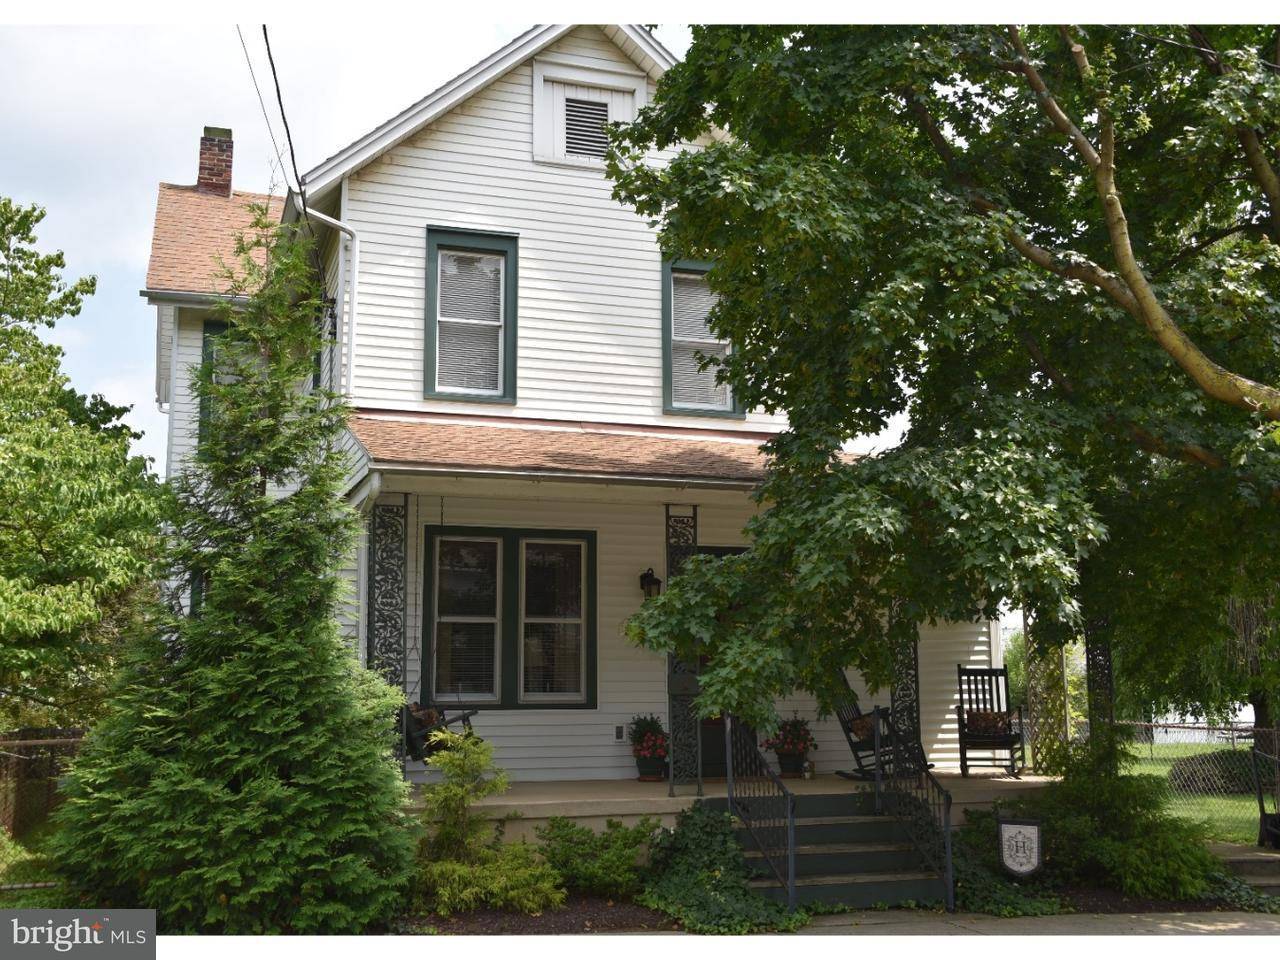 Single Family Home for Sale at 215 W PENN Avenue Robesonia, Pennsylvania 19551 United States